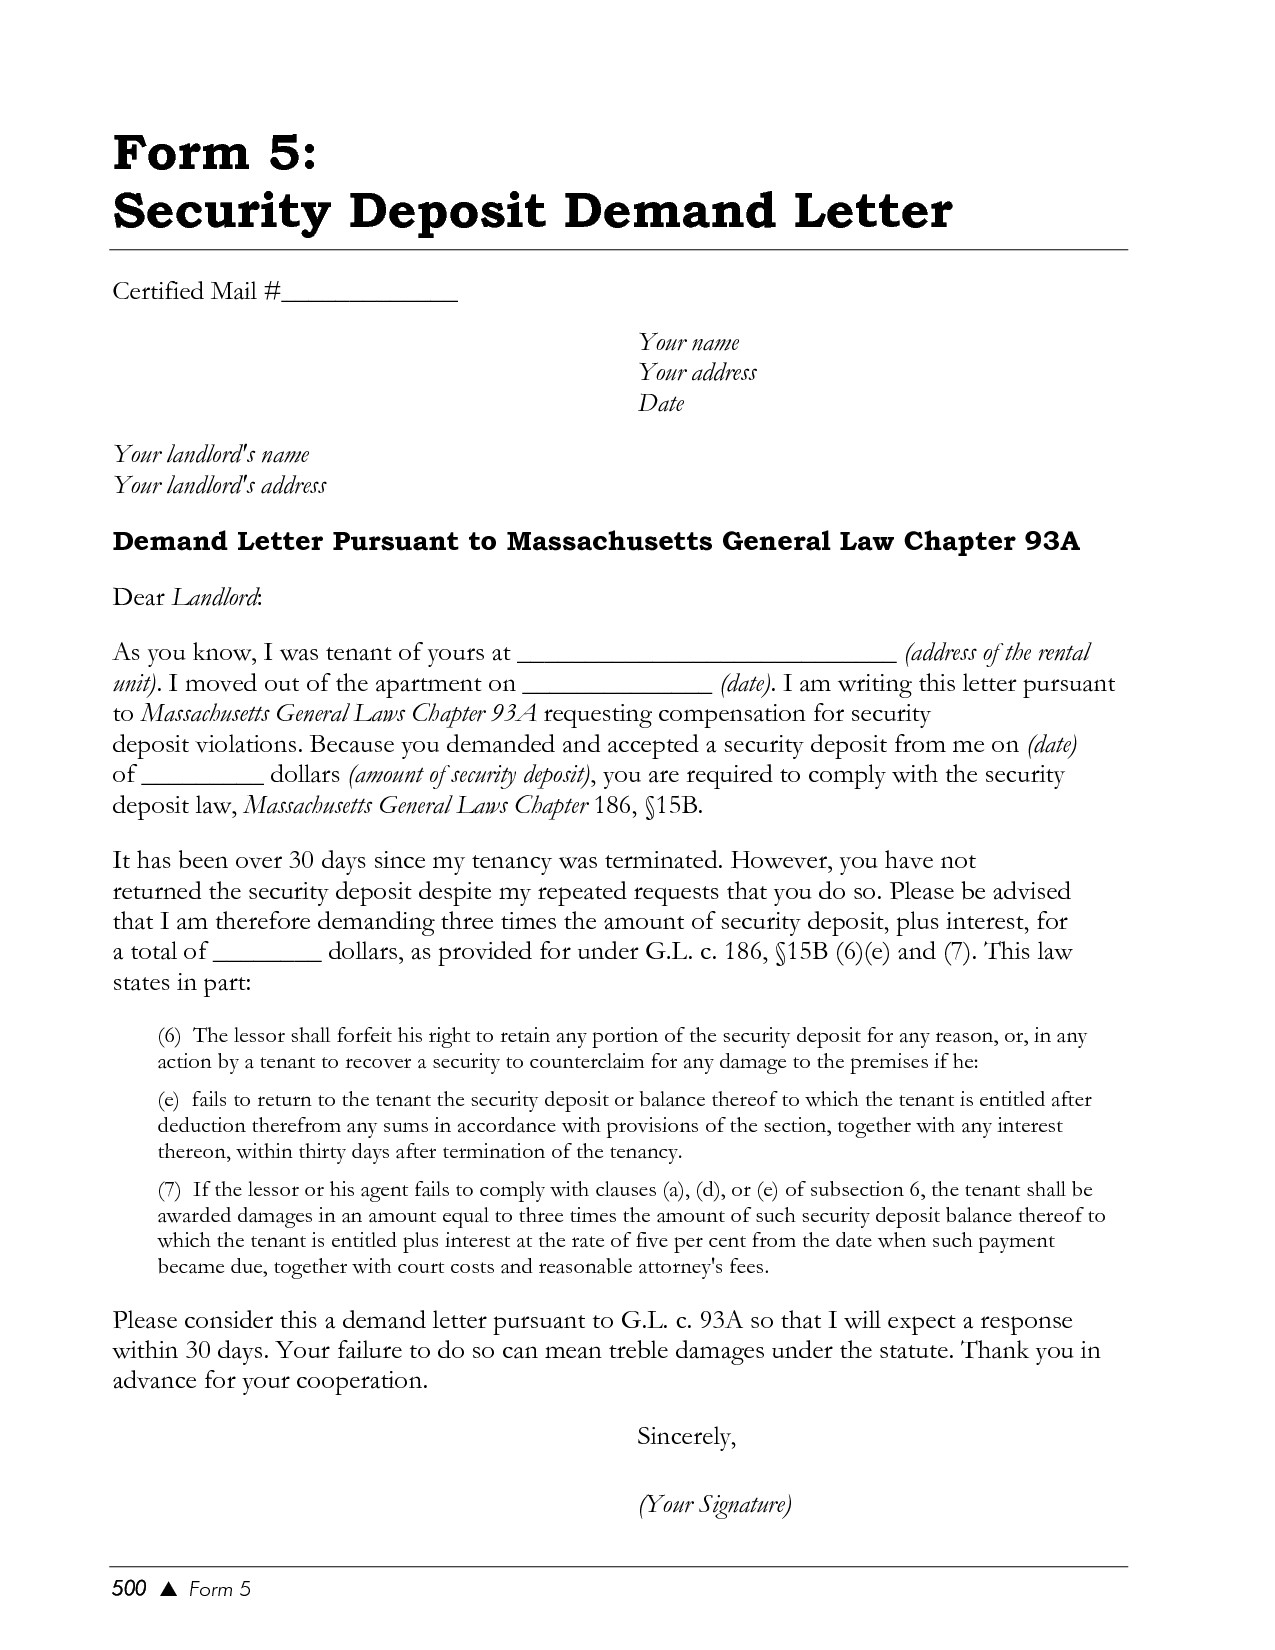 Security Deposit Demand Letter Template - Landlord Letter Returning Security Deposit Sample Demand Elemental